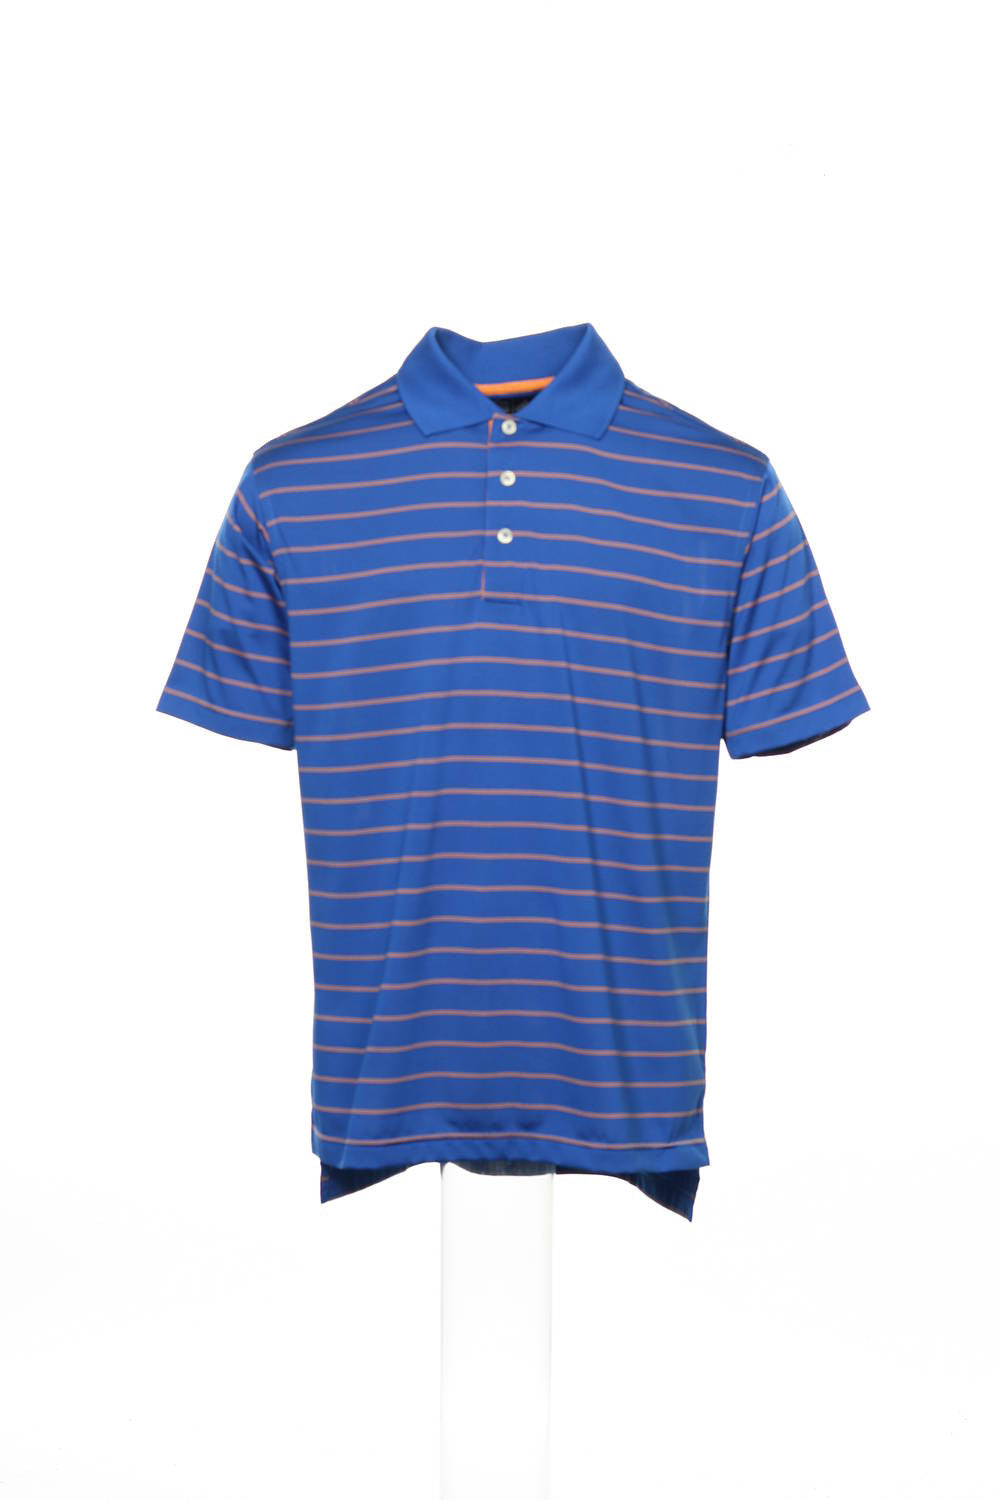 Adidas Mens Blue Polo Shirt